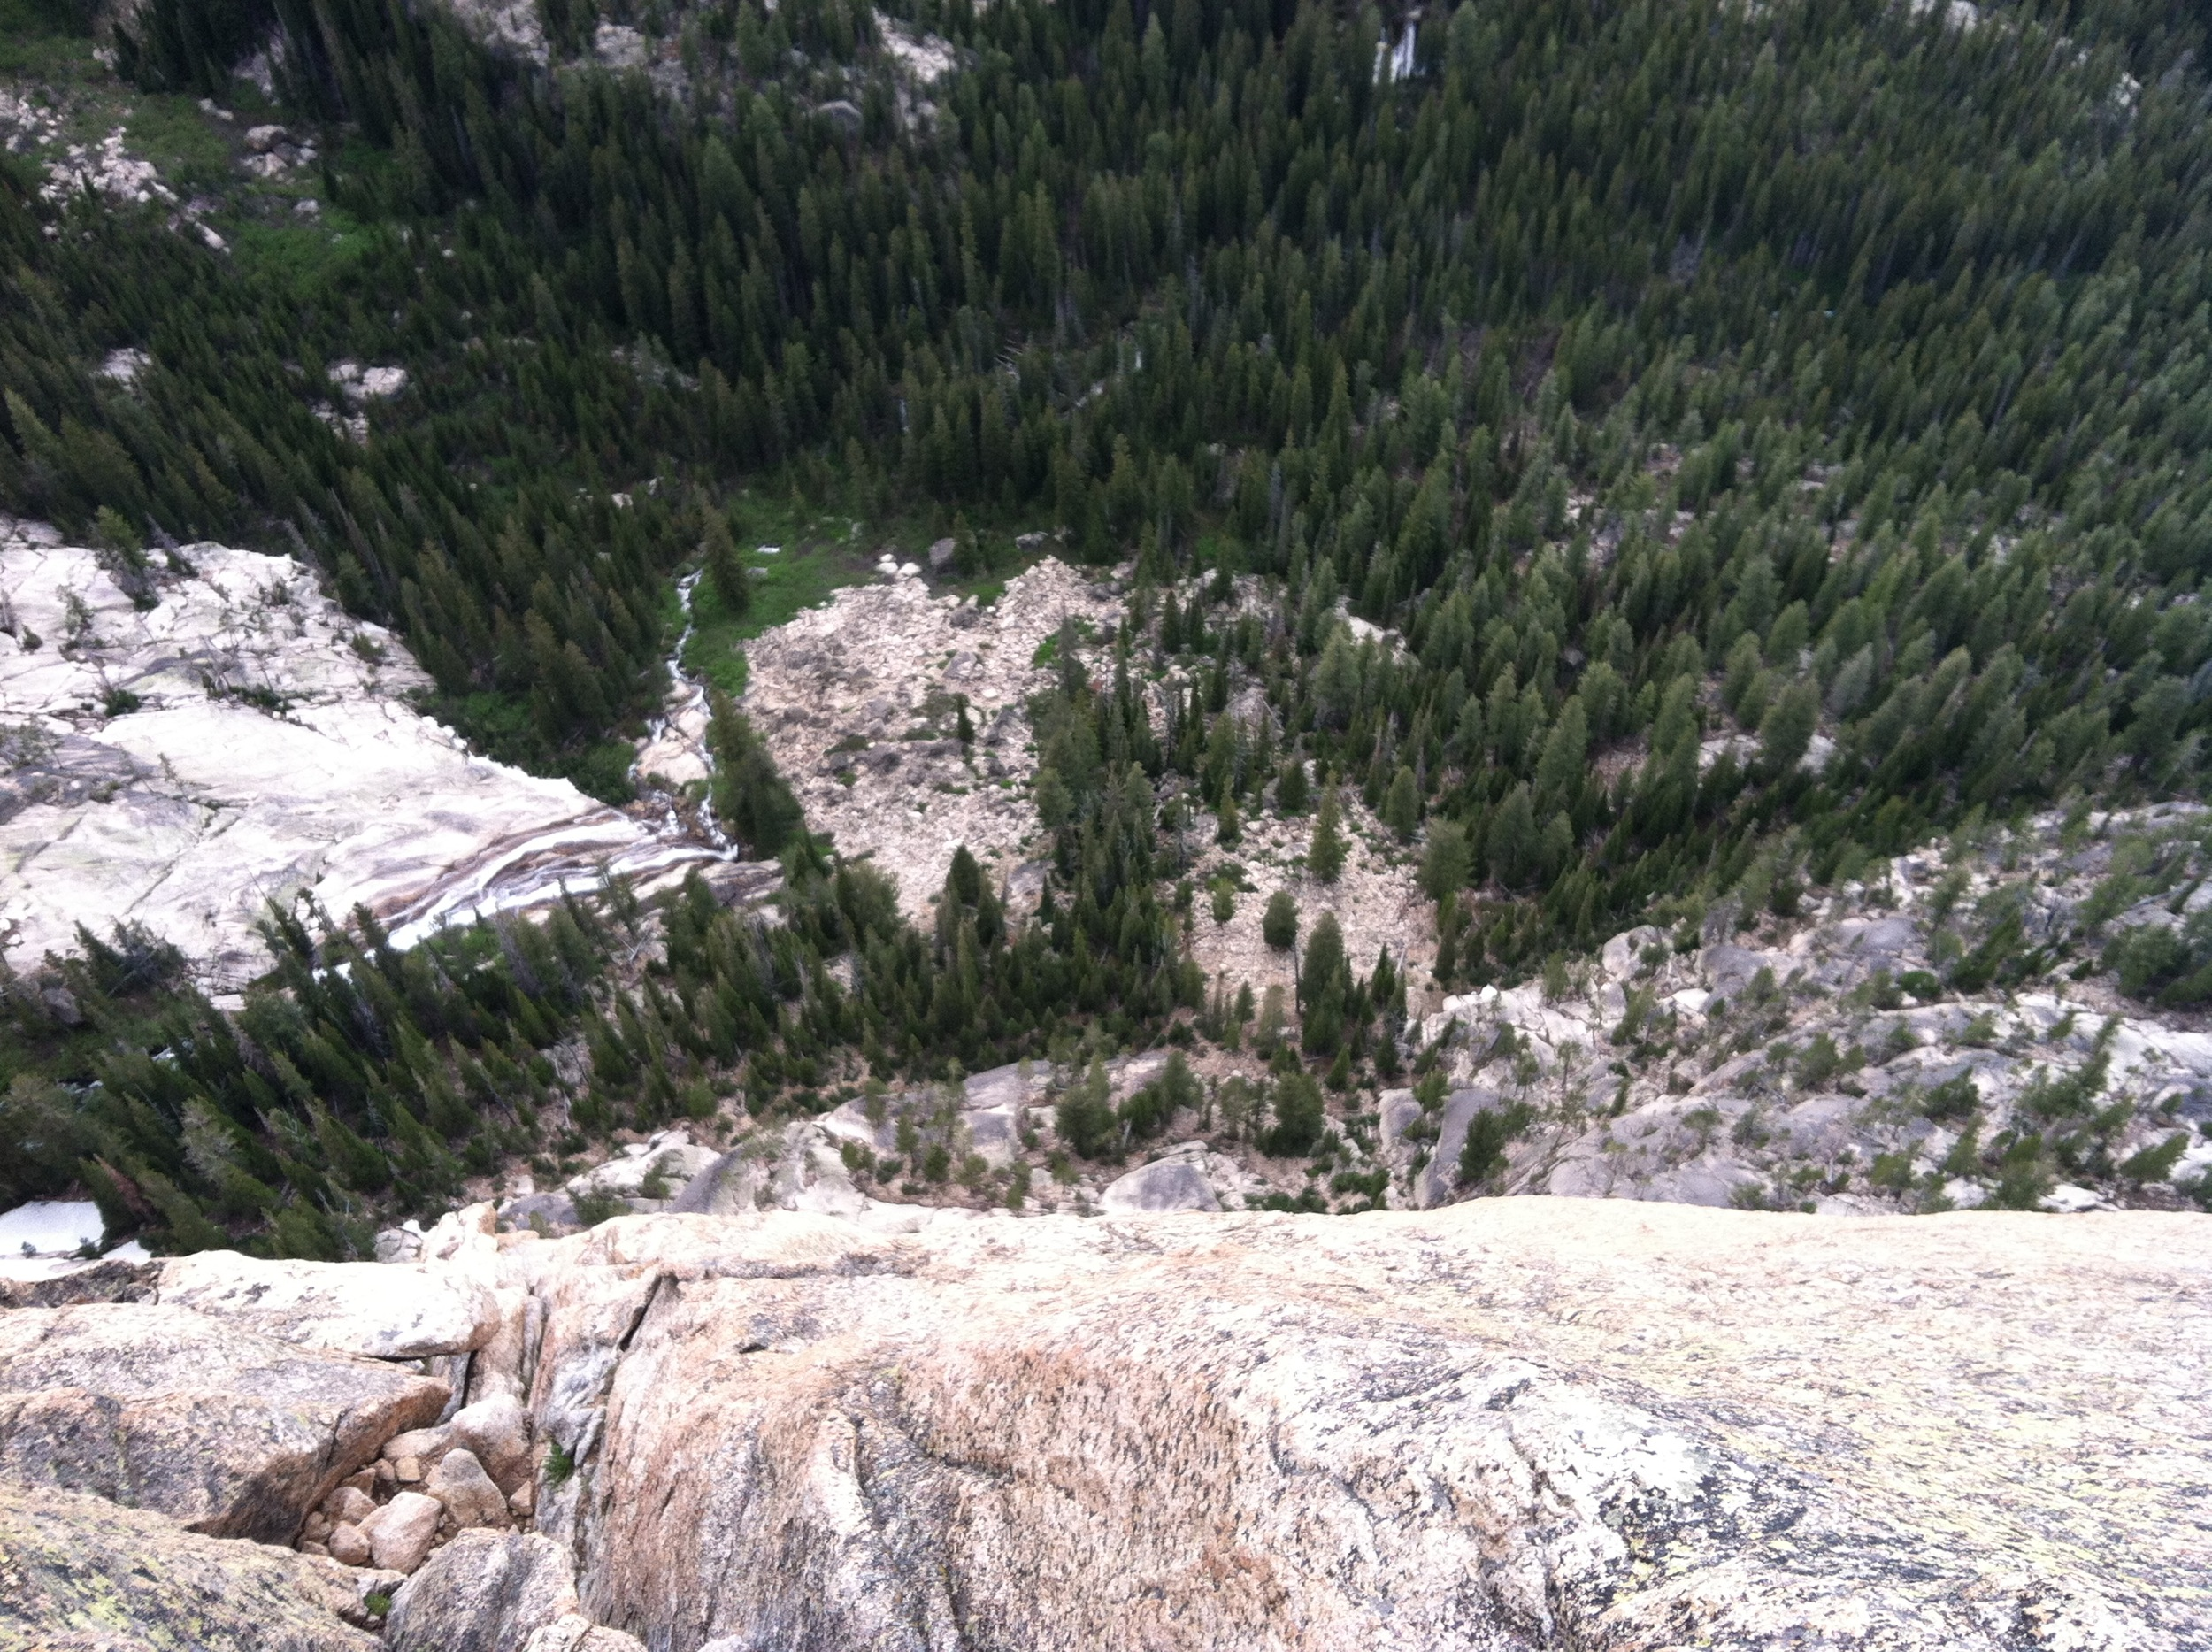 Looking 600 Feet Down to the Base of the Slabs